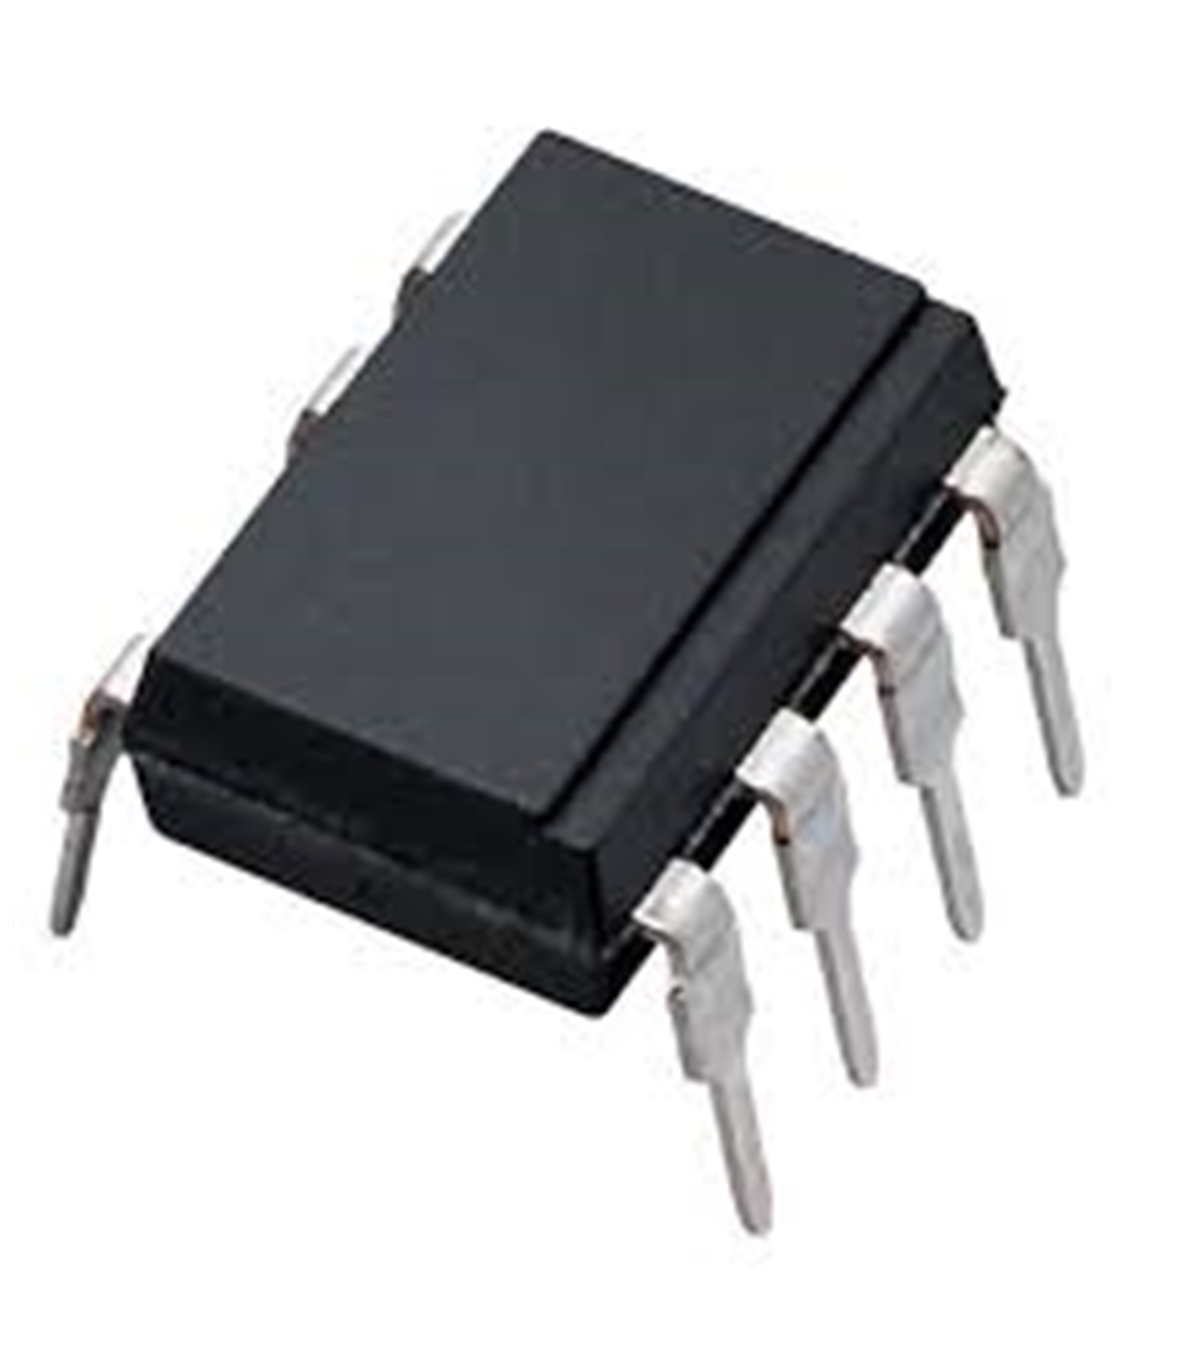 Lm3909n Led Flasher Oscillator Electronica Componentes Circuit 1 5 Volt 3 Lm3909